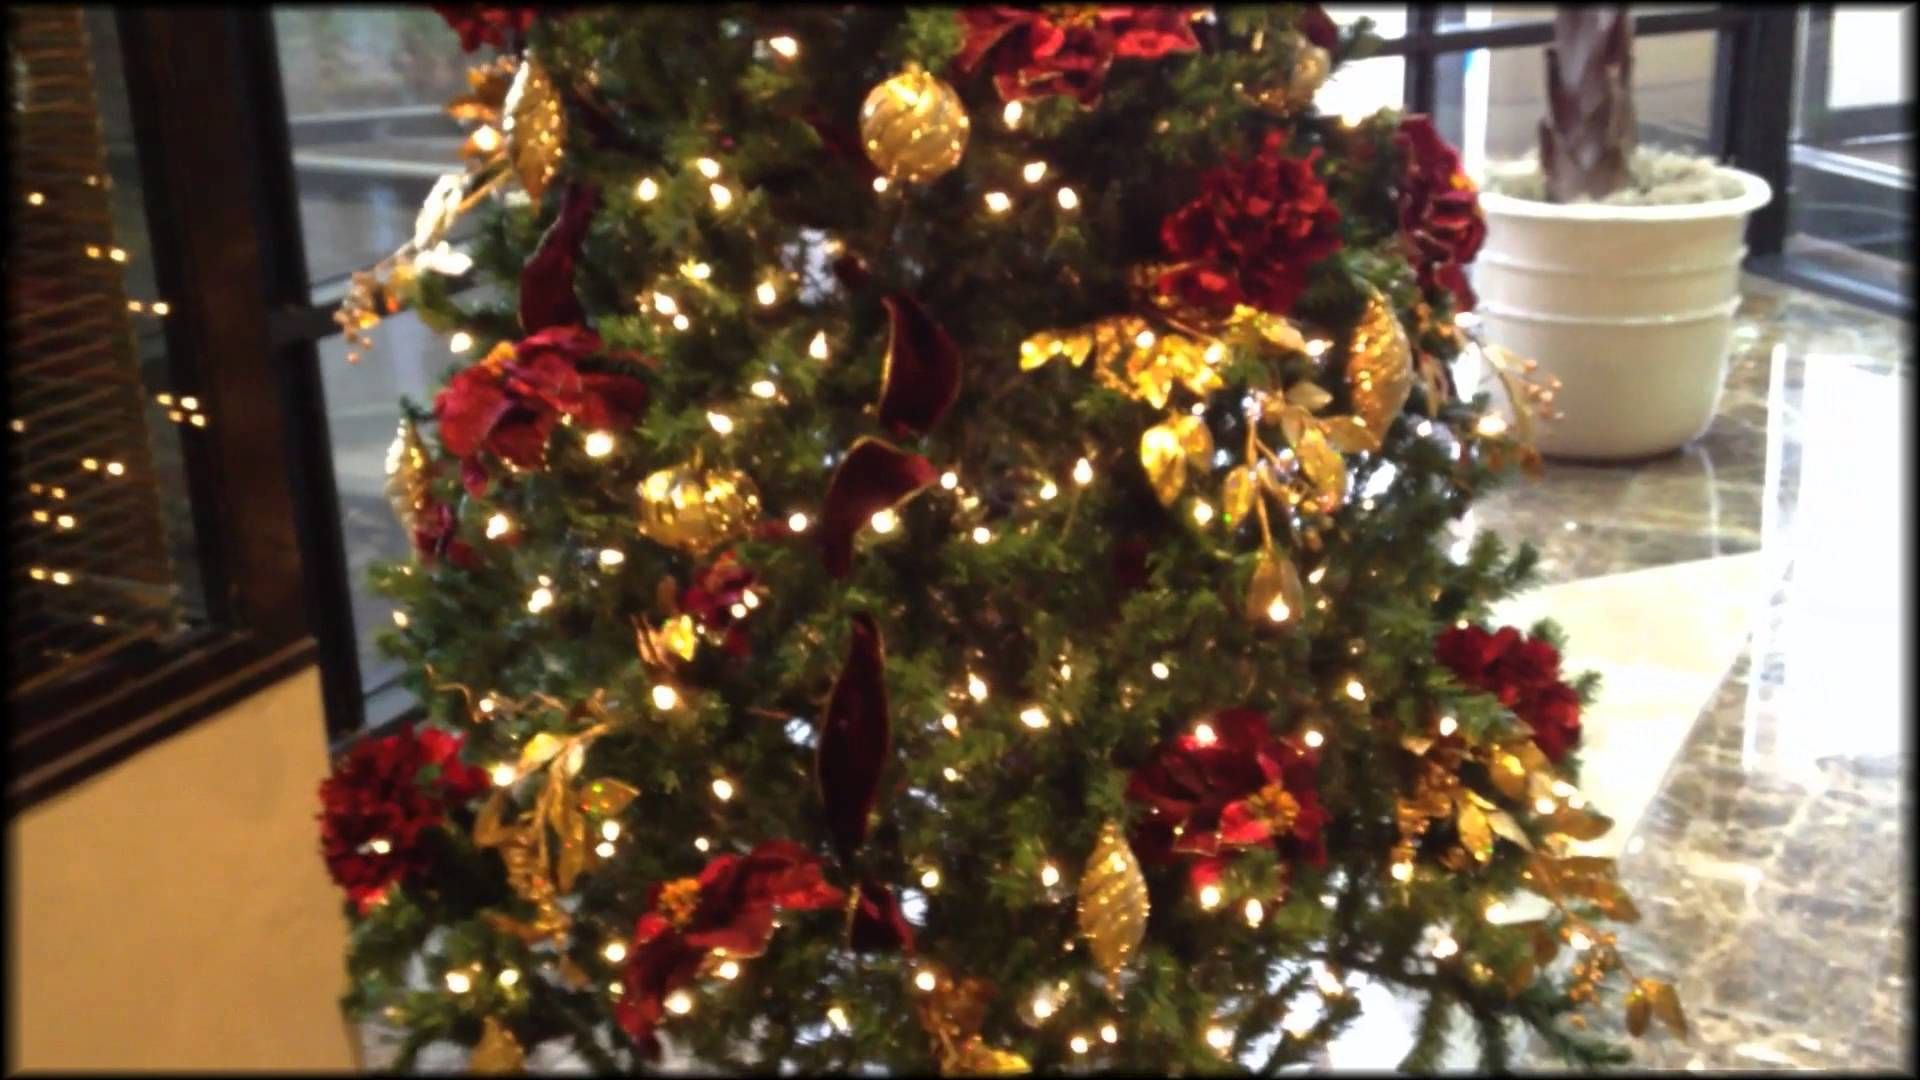 Learn how to decorate a Christmas tree professionally with Stacy